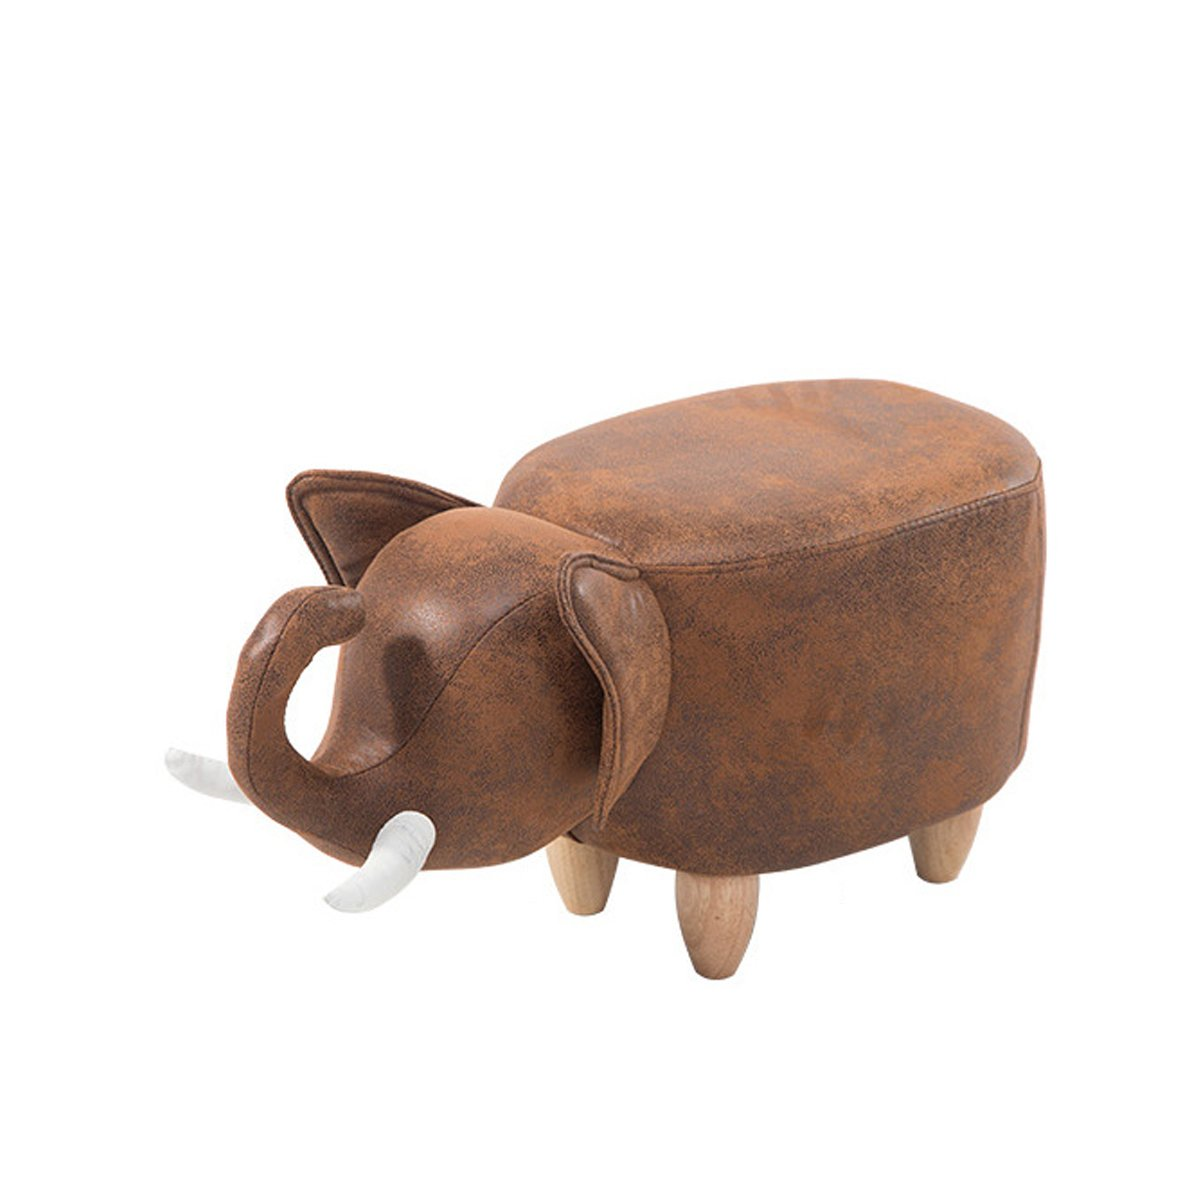 Layboo Can Wash Cute Little Elephant Animal Modeling Stool,Ottoman Stool